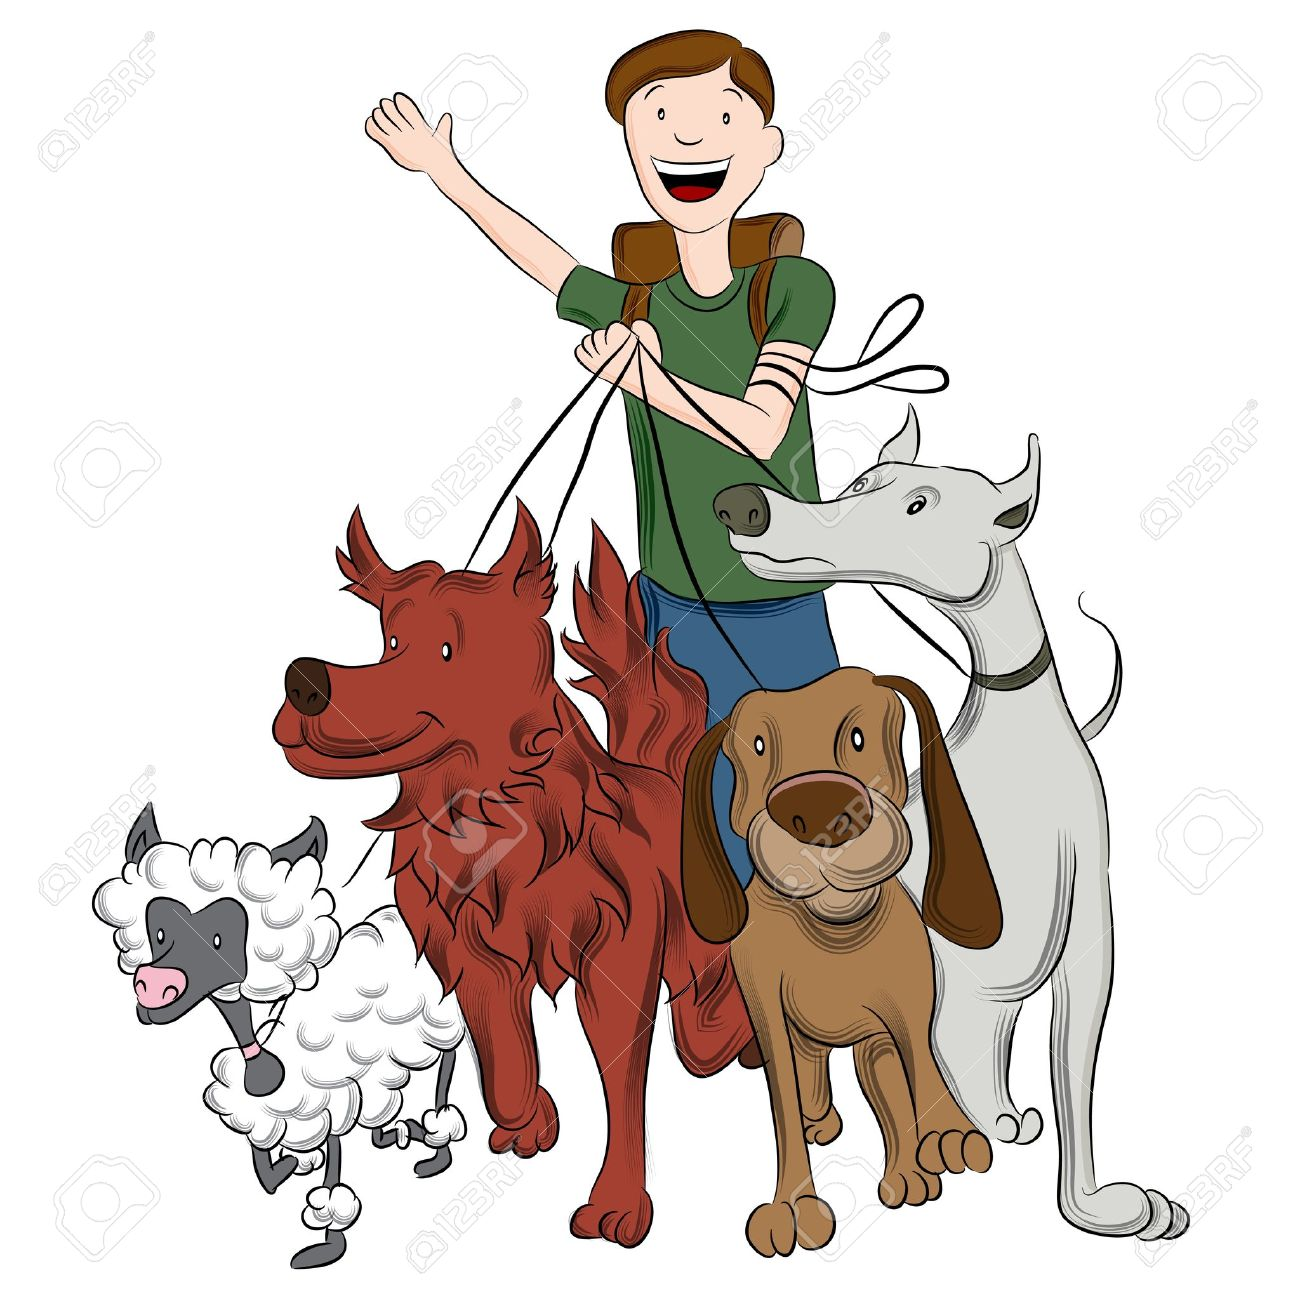 4,865 Dog Walking Cliparts, Stock Vector And Royalty Free Dog ...